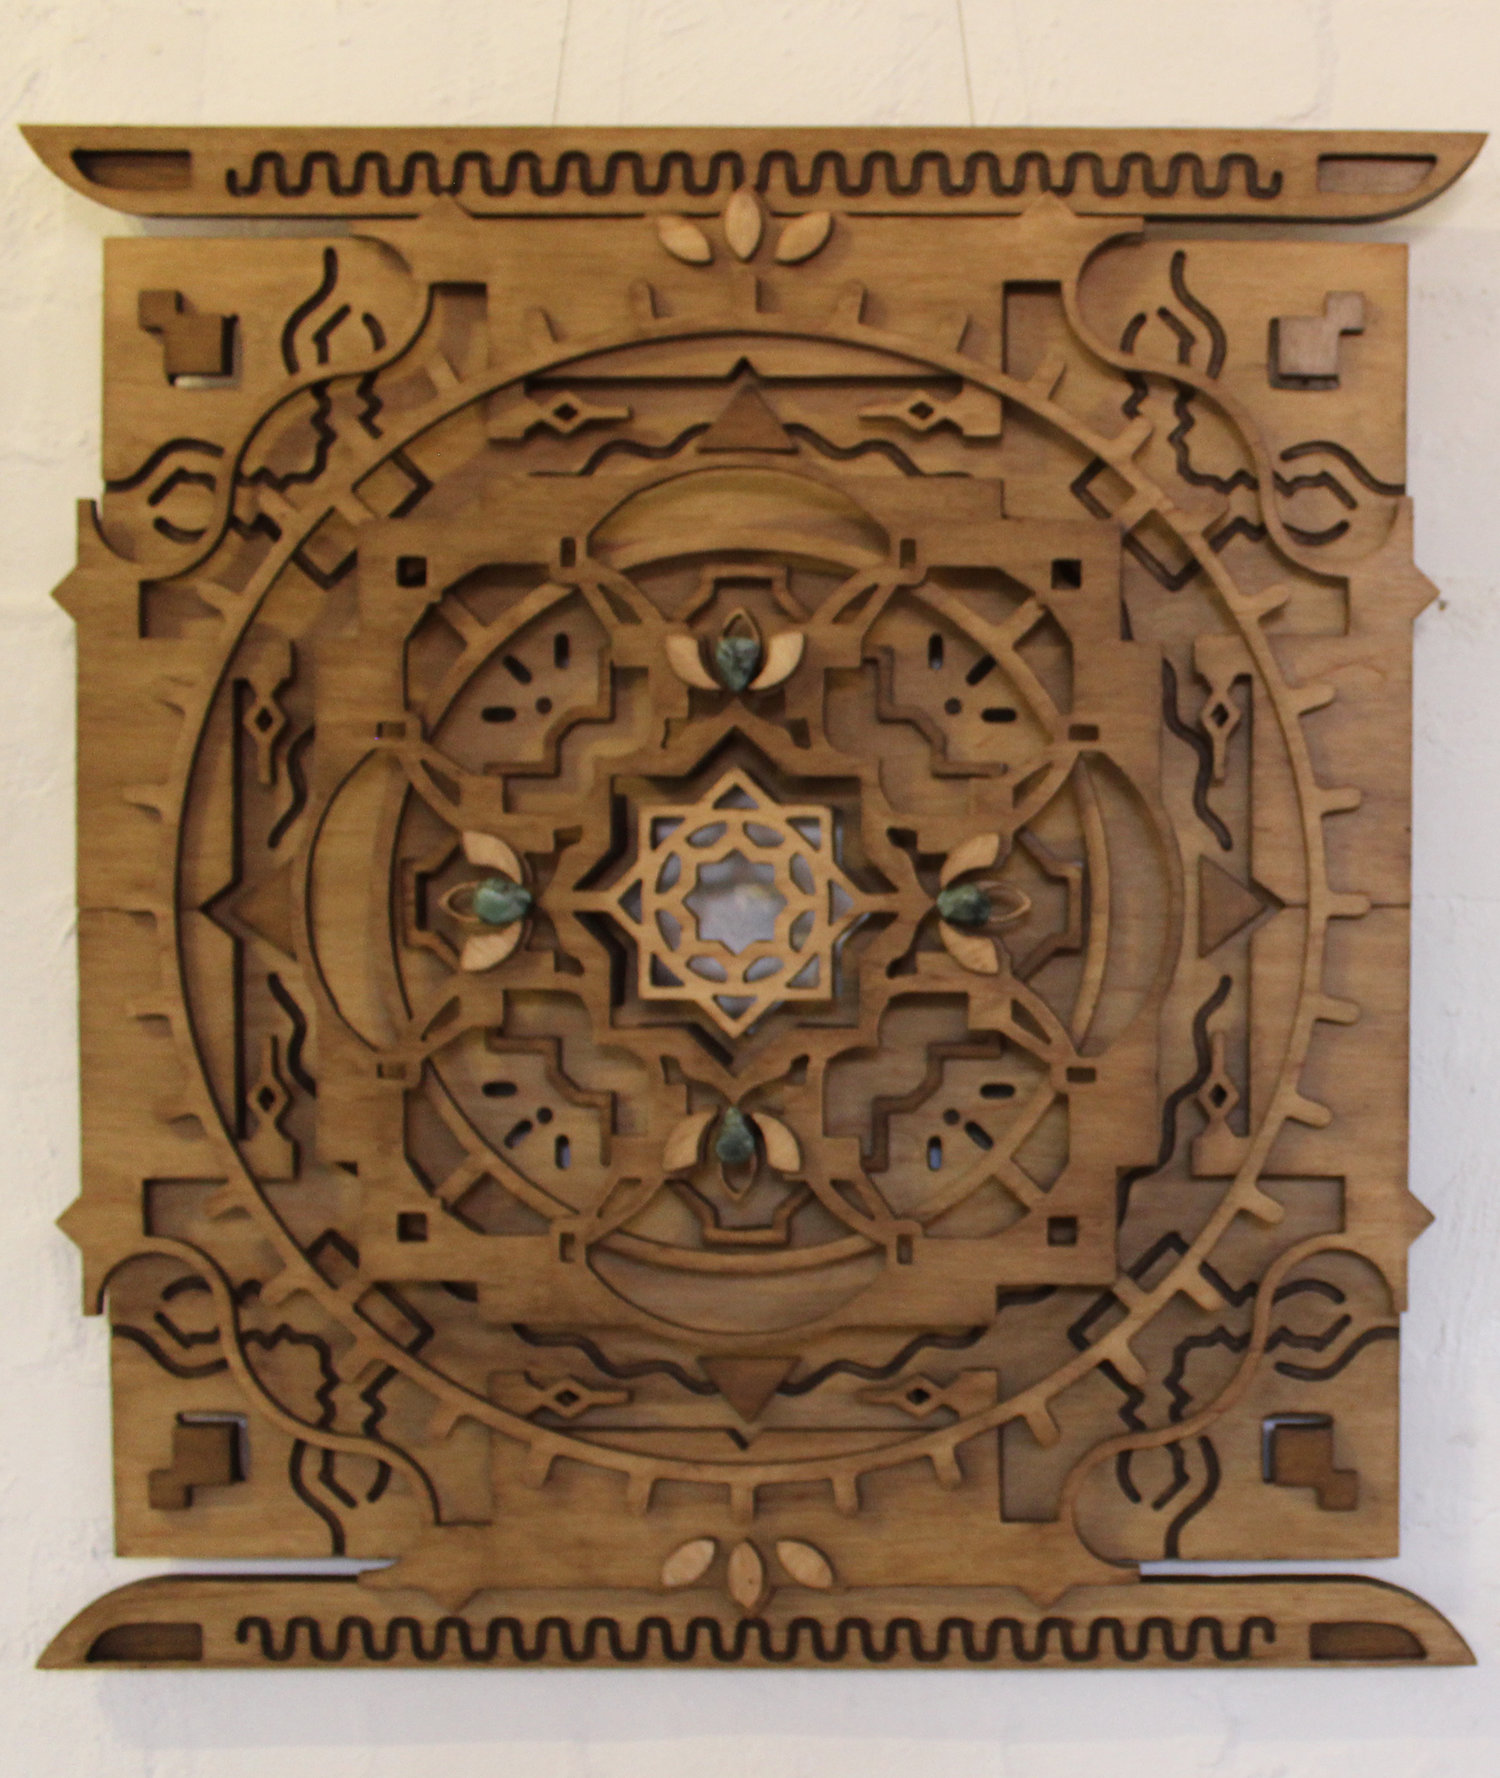 Dragons Gate - 2018 - Enquire Via hazelmandala@gmail.comCAN SHIP WORLDWIDELINK FOR PHOTOS & DESCRIPTIONhttps://www.hazelmandala.com/work/#/dragons-gate-v2/Dimensions 850mm x 750mmEmerald Stones on Front. $1800 AUD